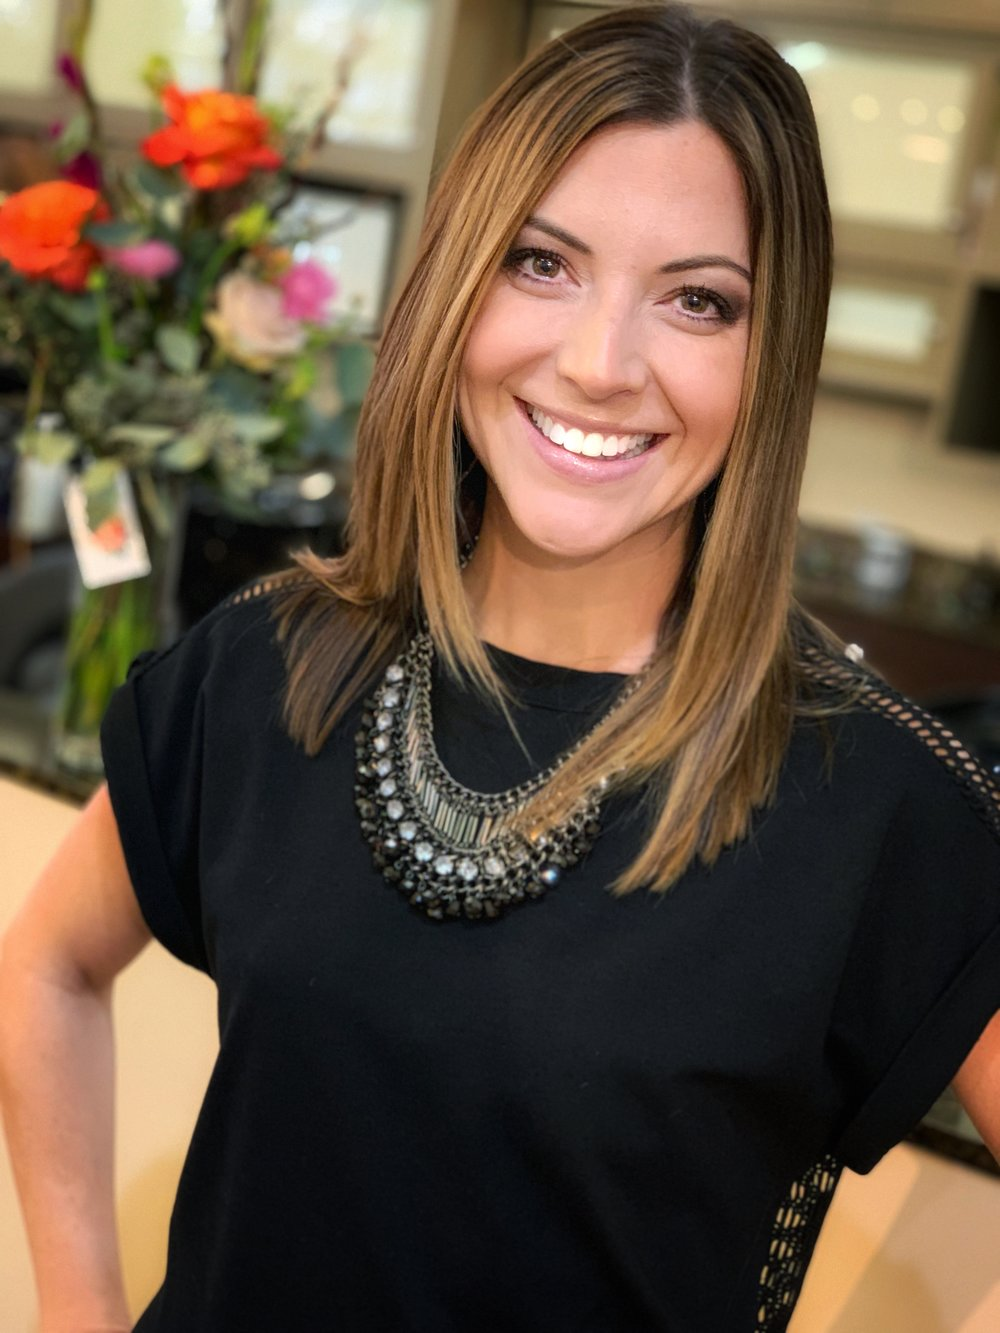 Christine - Specializes in:Hair Color, Teaching People about their Hair, Balayage, Highlights